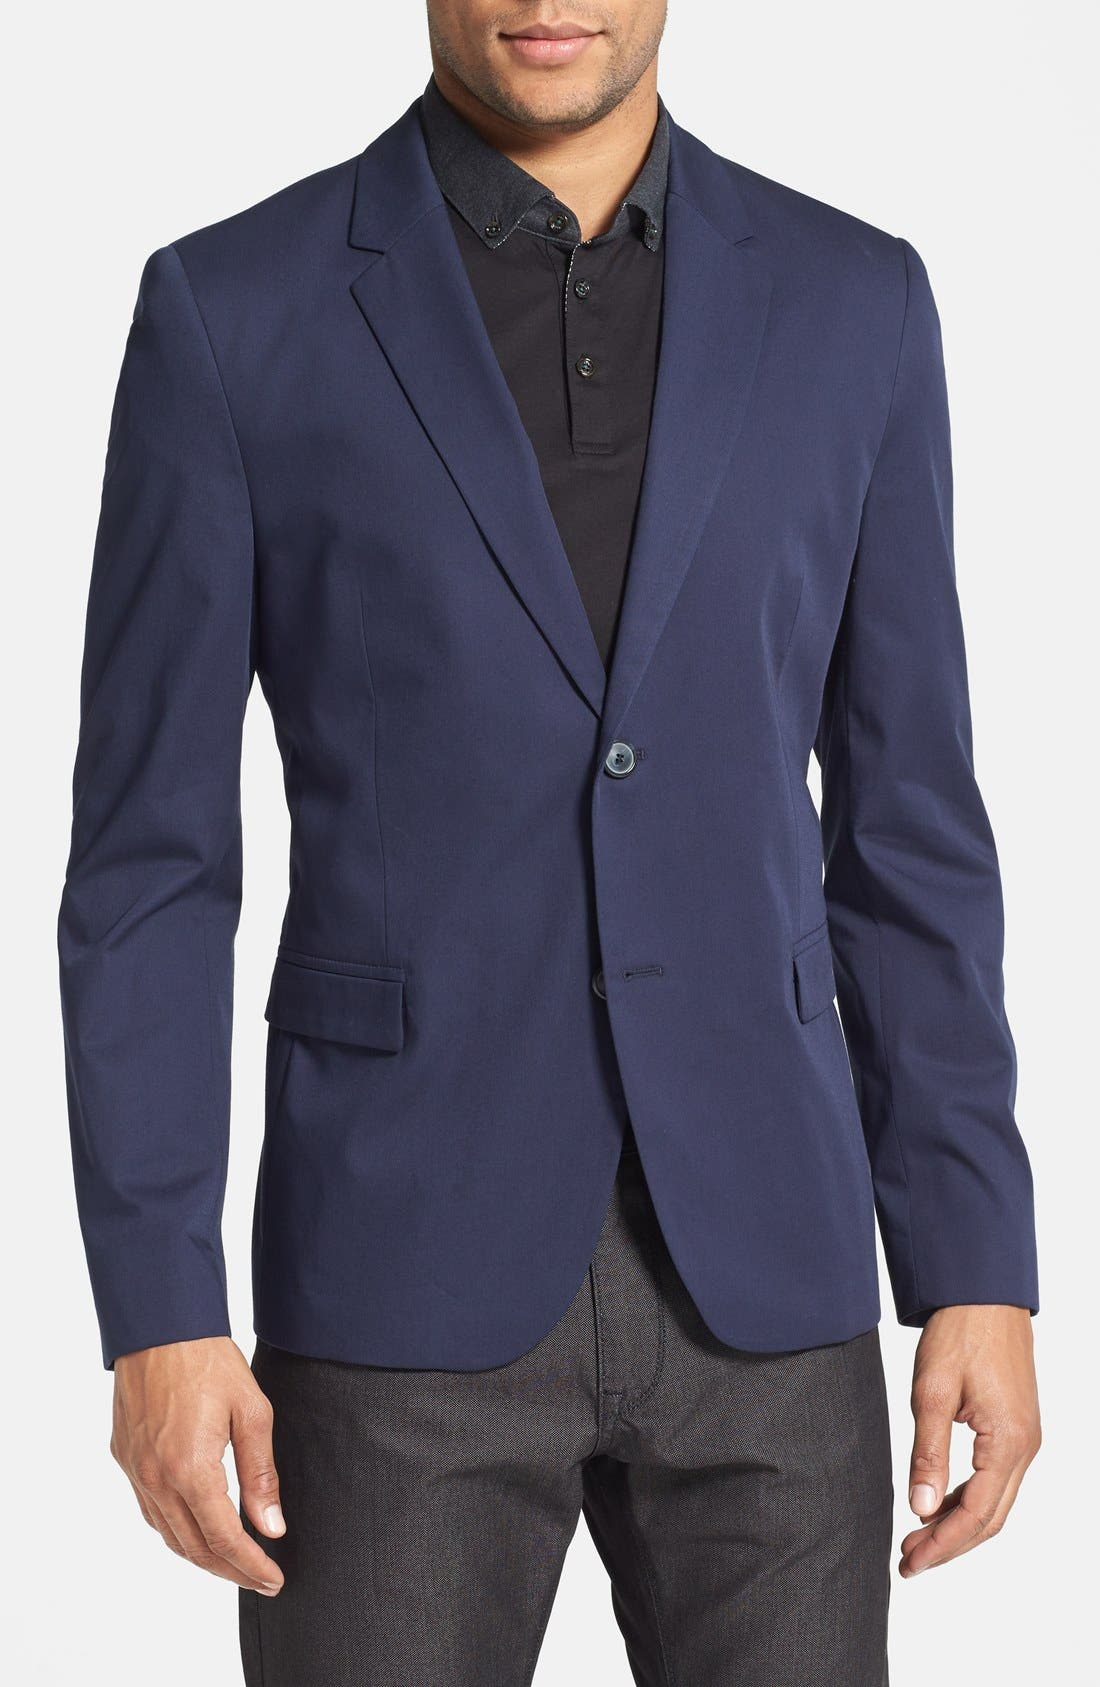 Main Image - HUGO 'Ambrus' Trim Fit Navy Stretch Cotton Sport Coat (Online Only)